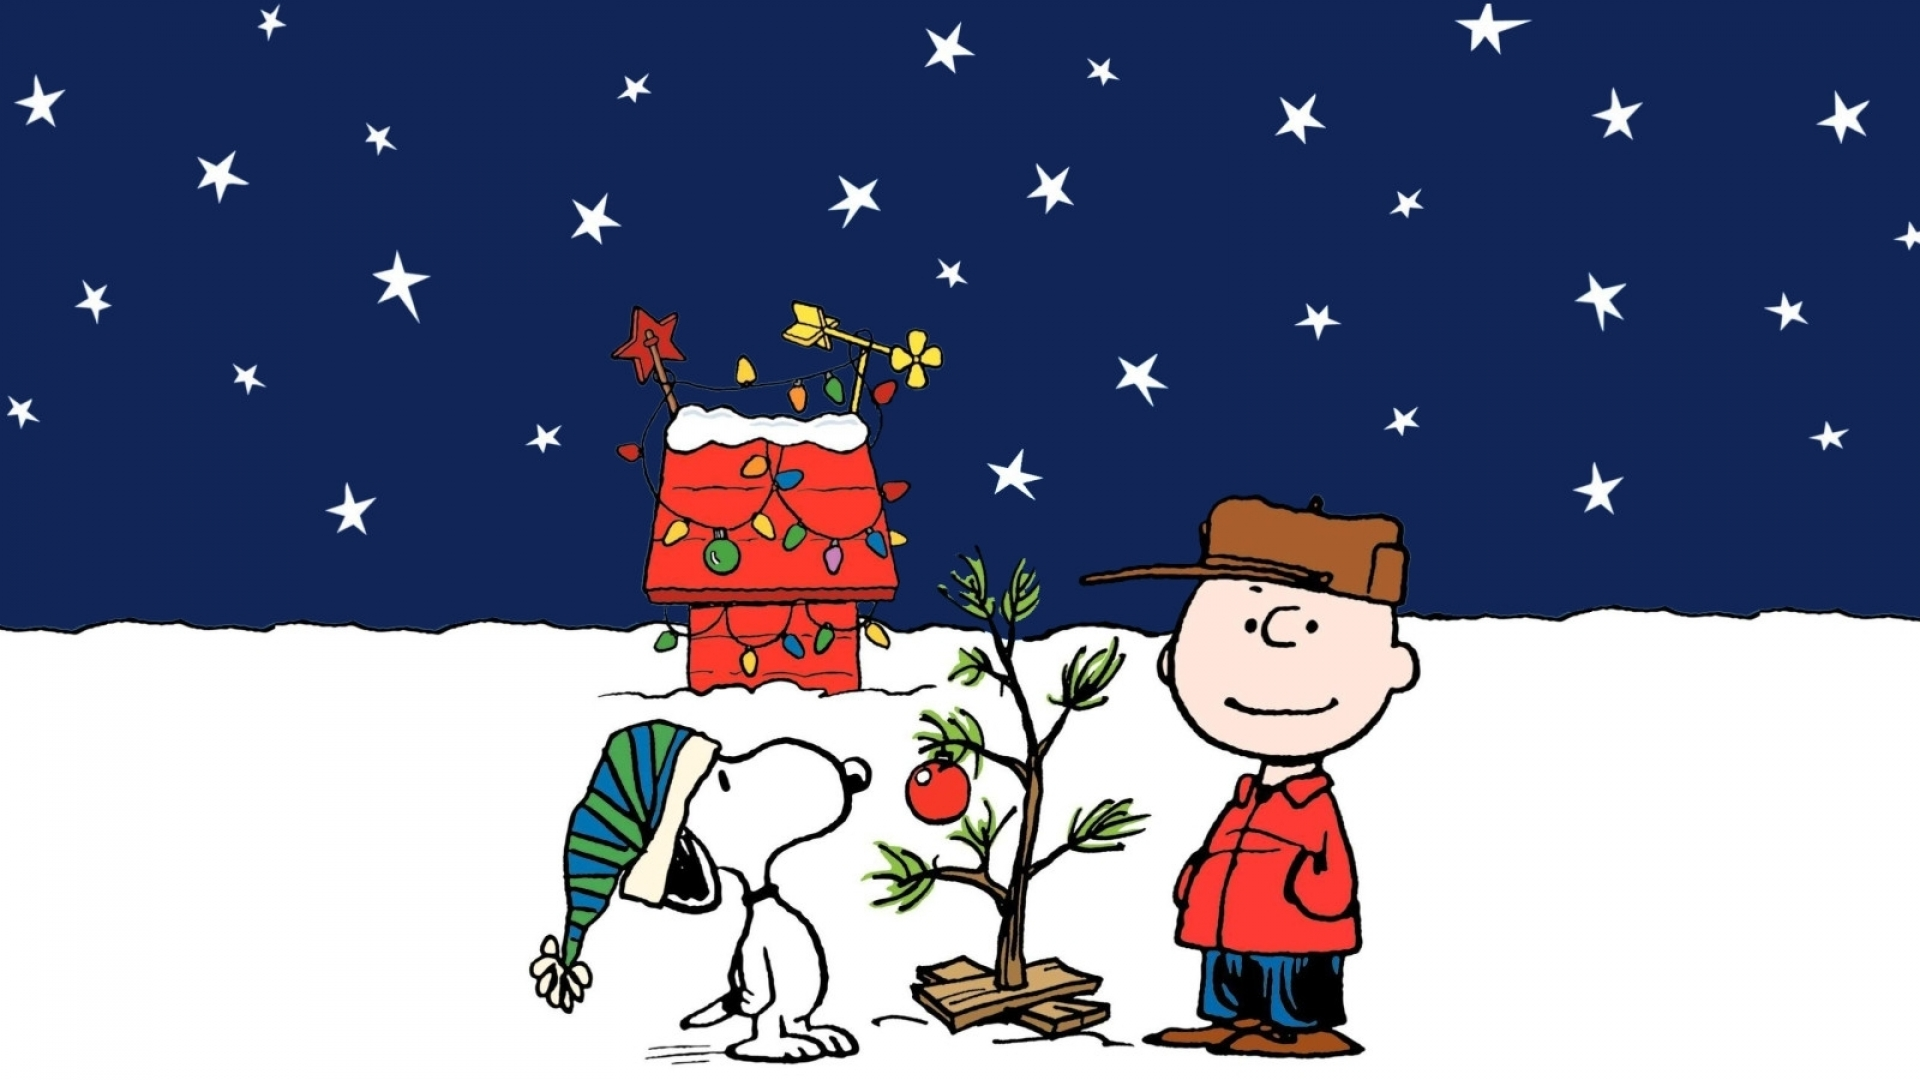 CHARLIE BROWN peanuts comics snoopy christmas gg wallpaper 1920x1080 1920x1080